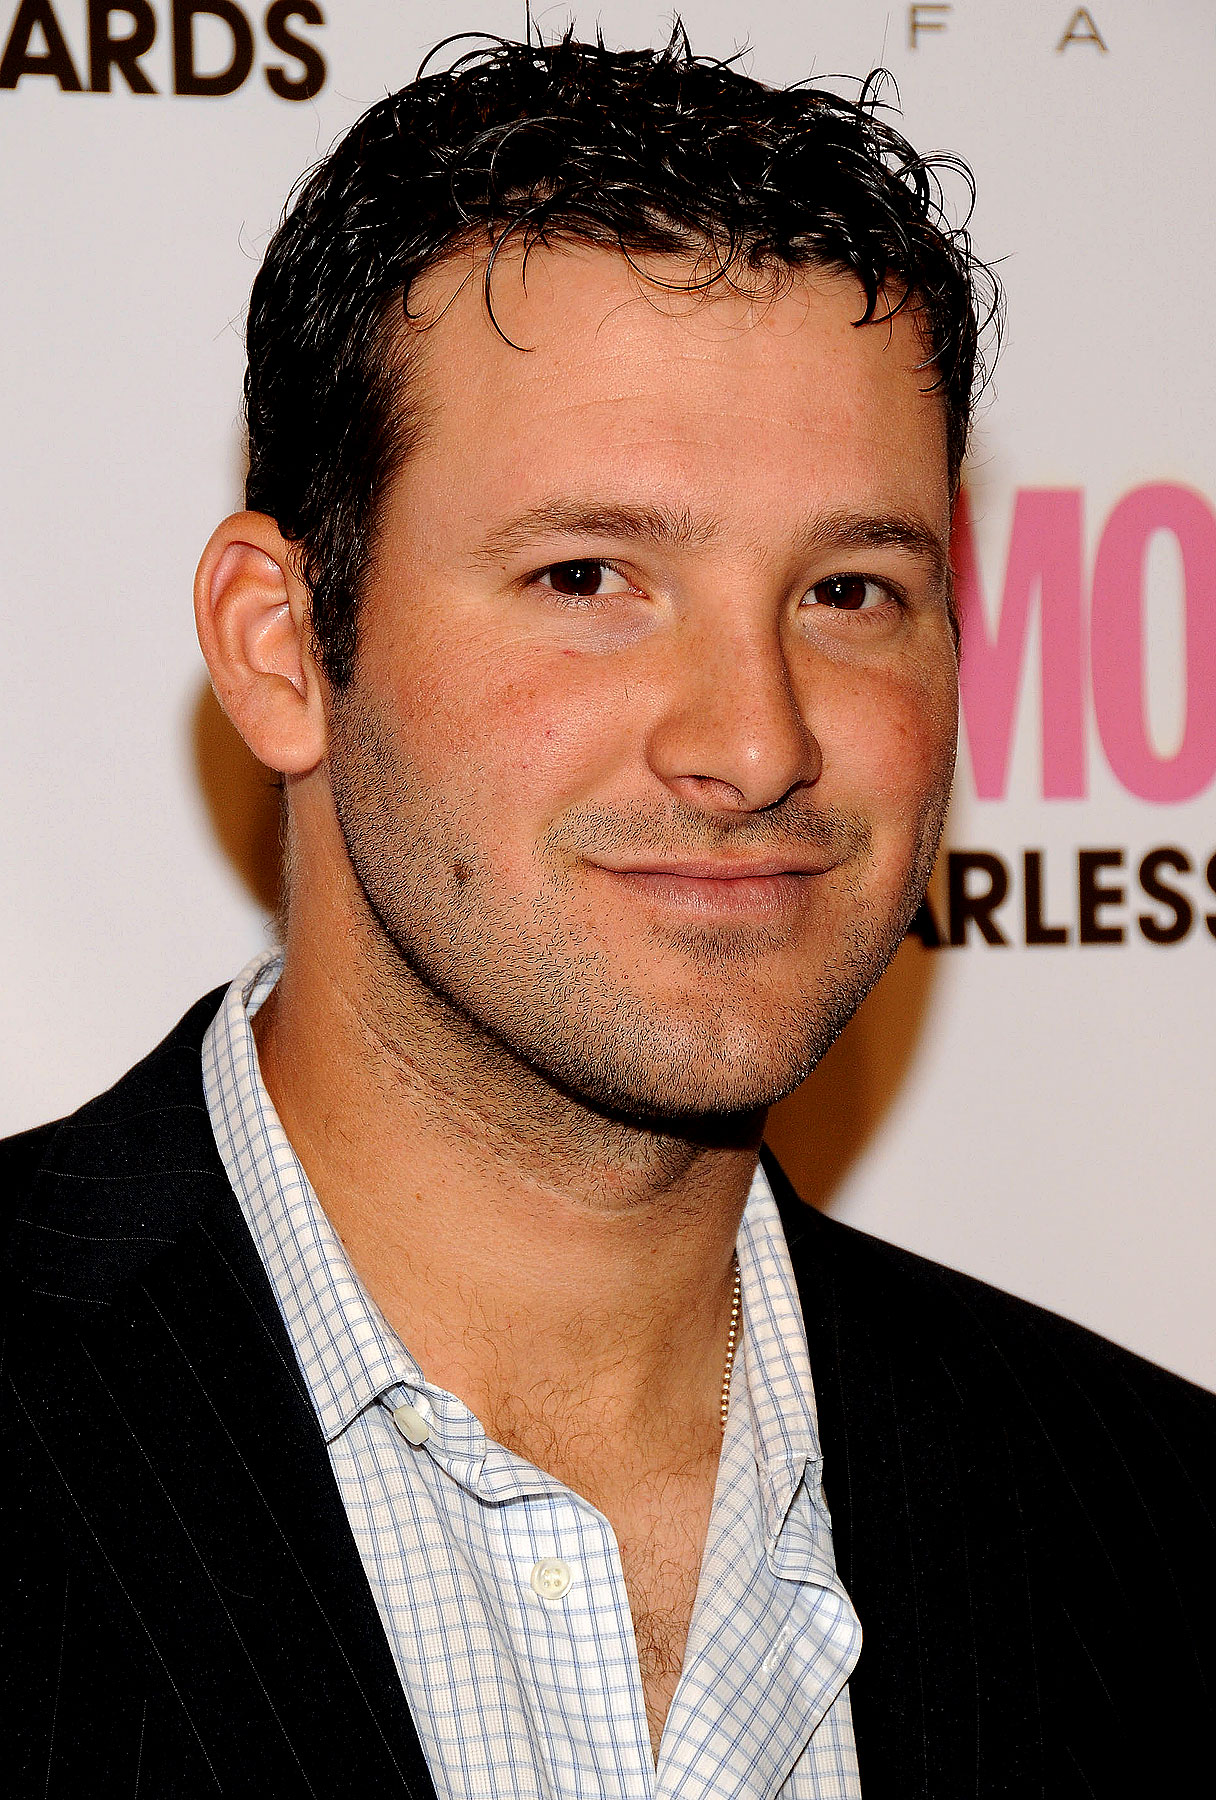 Tony Romo Is Getting Over Jessica Simpson Pretty Well